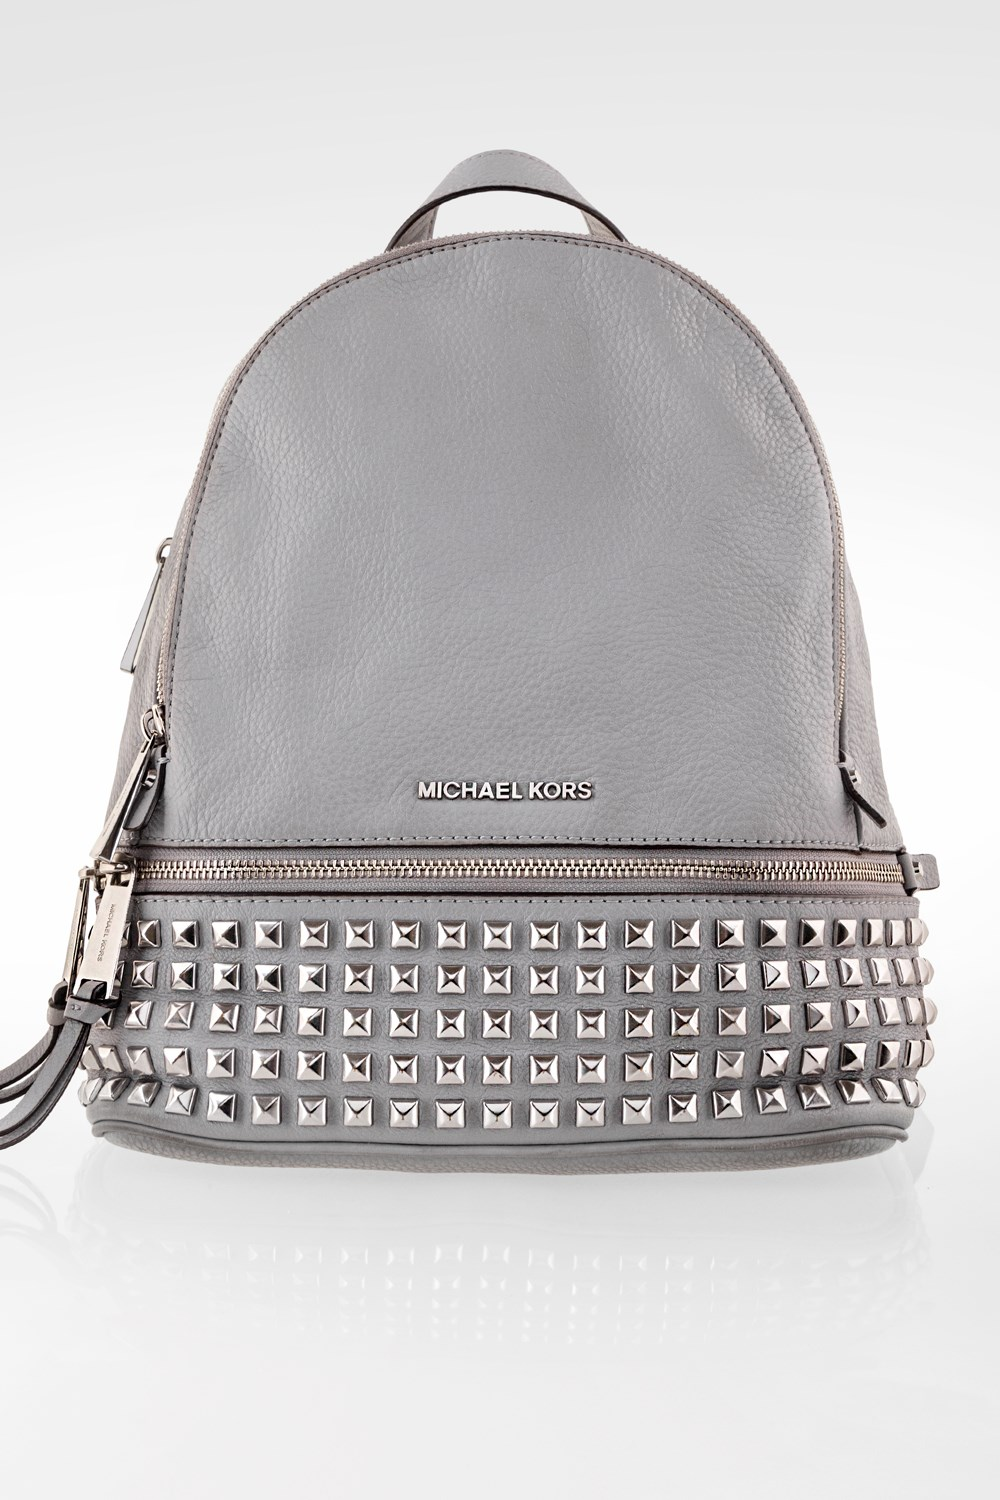 01e473b4d3ad1 ... Grey Rhea Medium Studded Leather Backpack. Mouse ...